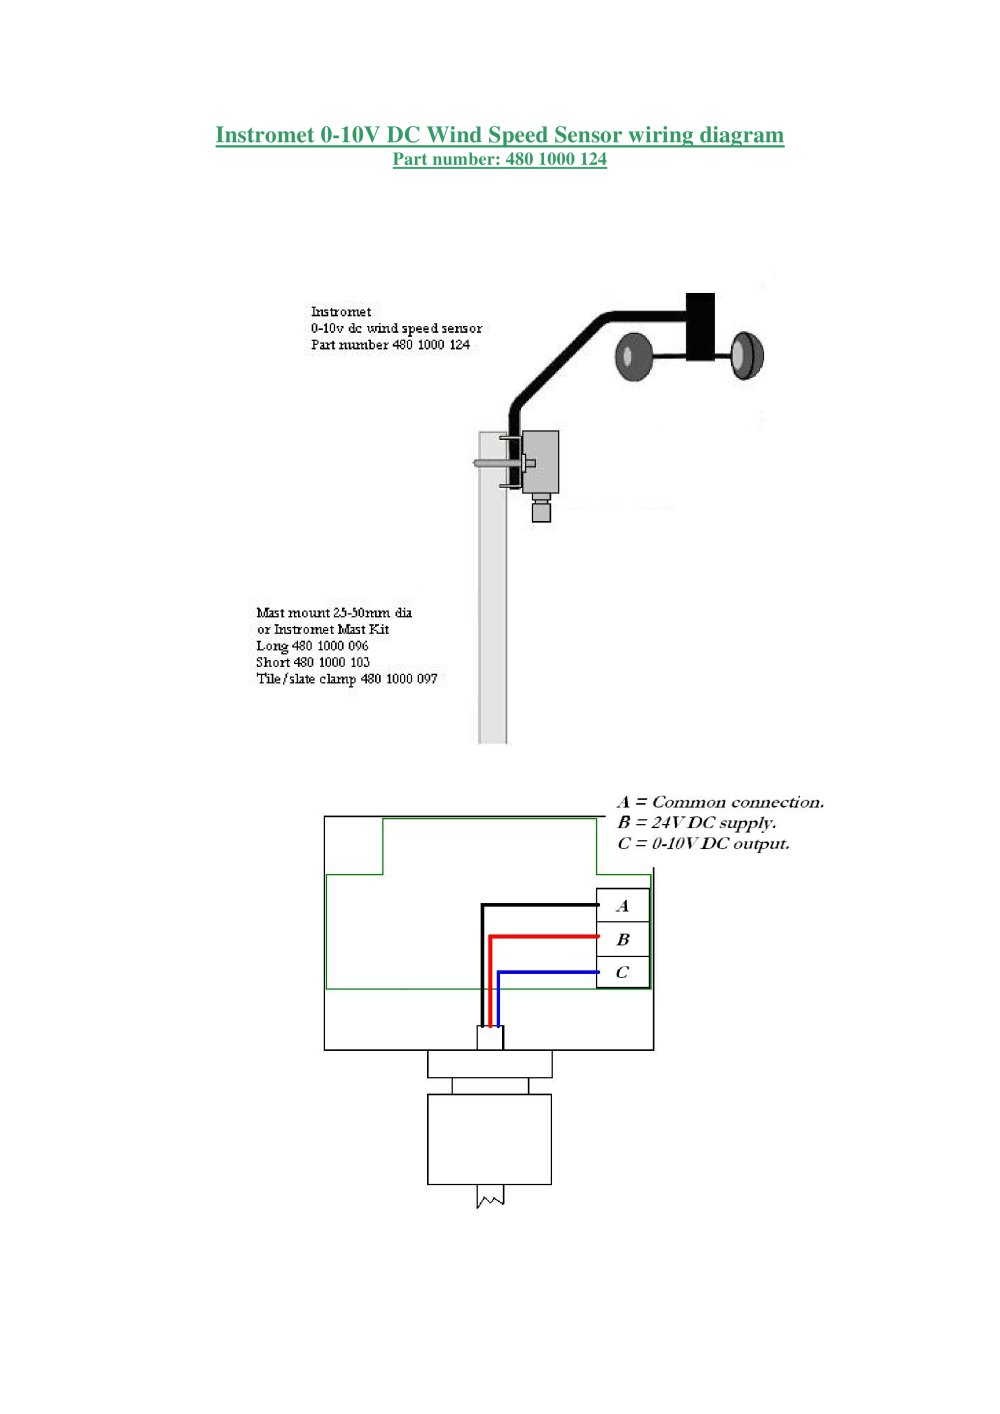 0 10v Wiring Diagram Electrical Diagrams Forum Dimmer On Led Wall Instromet Dc Wind Speed Sensor Rh Pdf Nauticexpo Com Dimming Lutron Diva